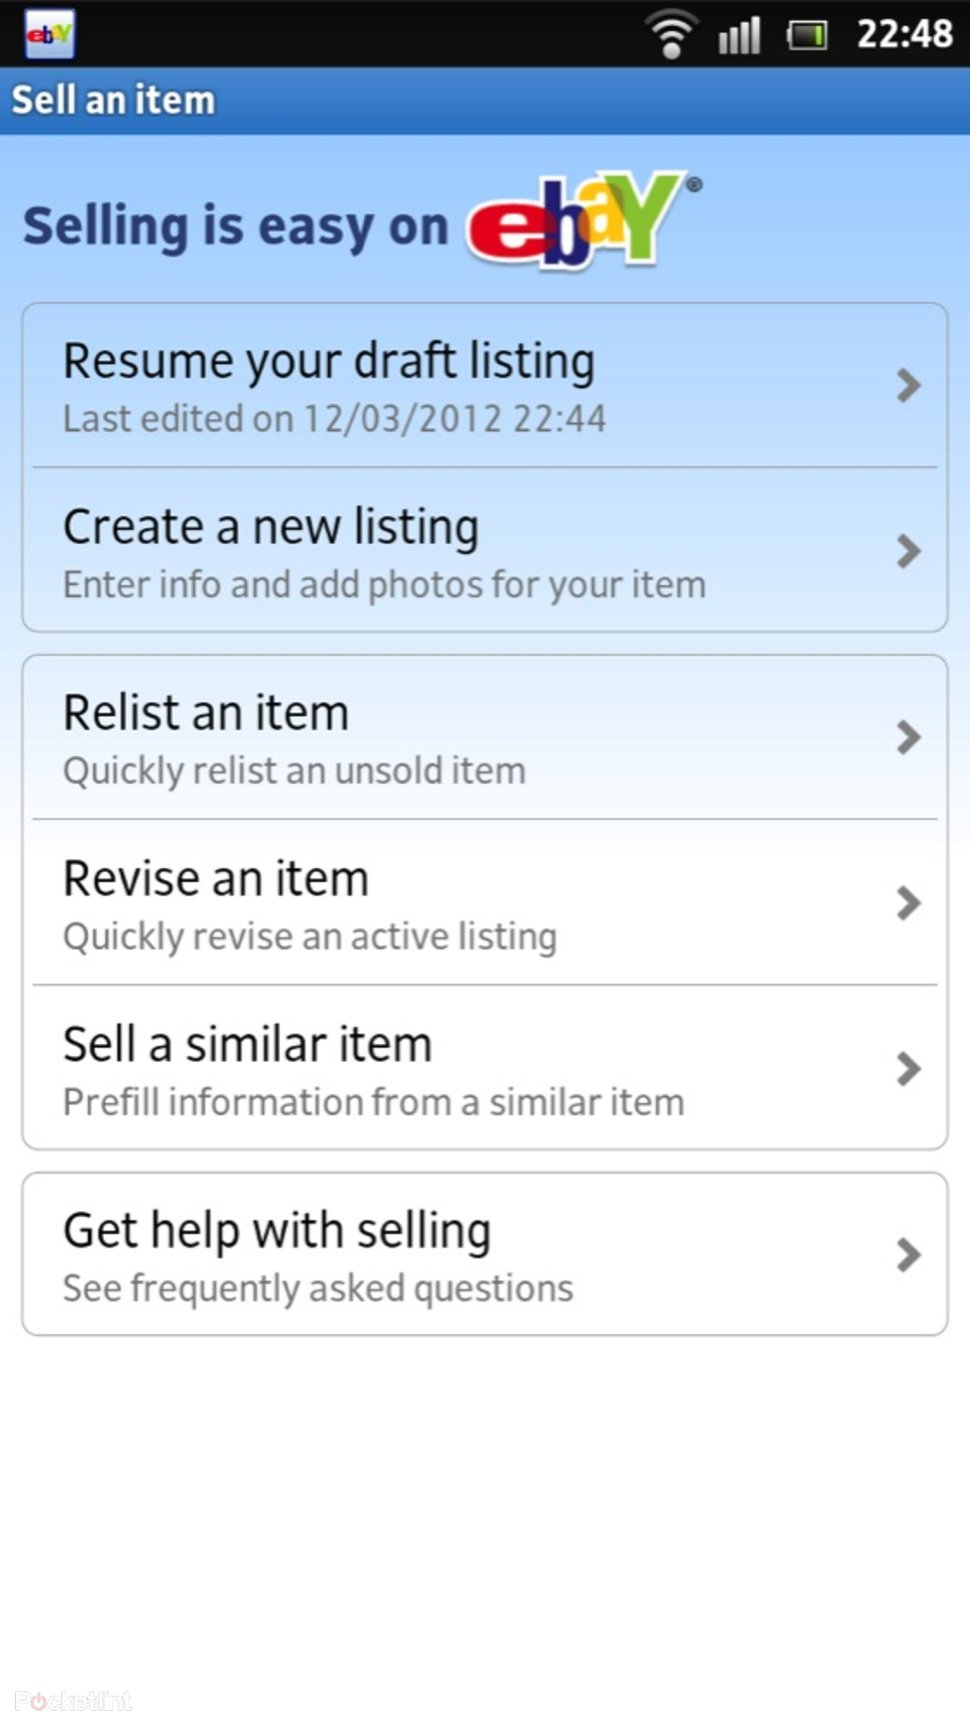 App of the day official ebay android app review android app of the day official ebay android app review android image 6 ccuart Choice Image